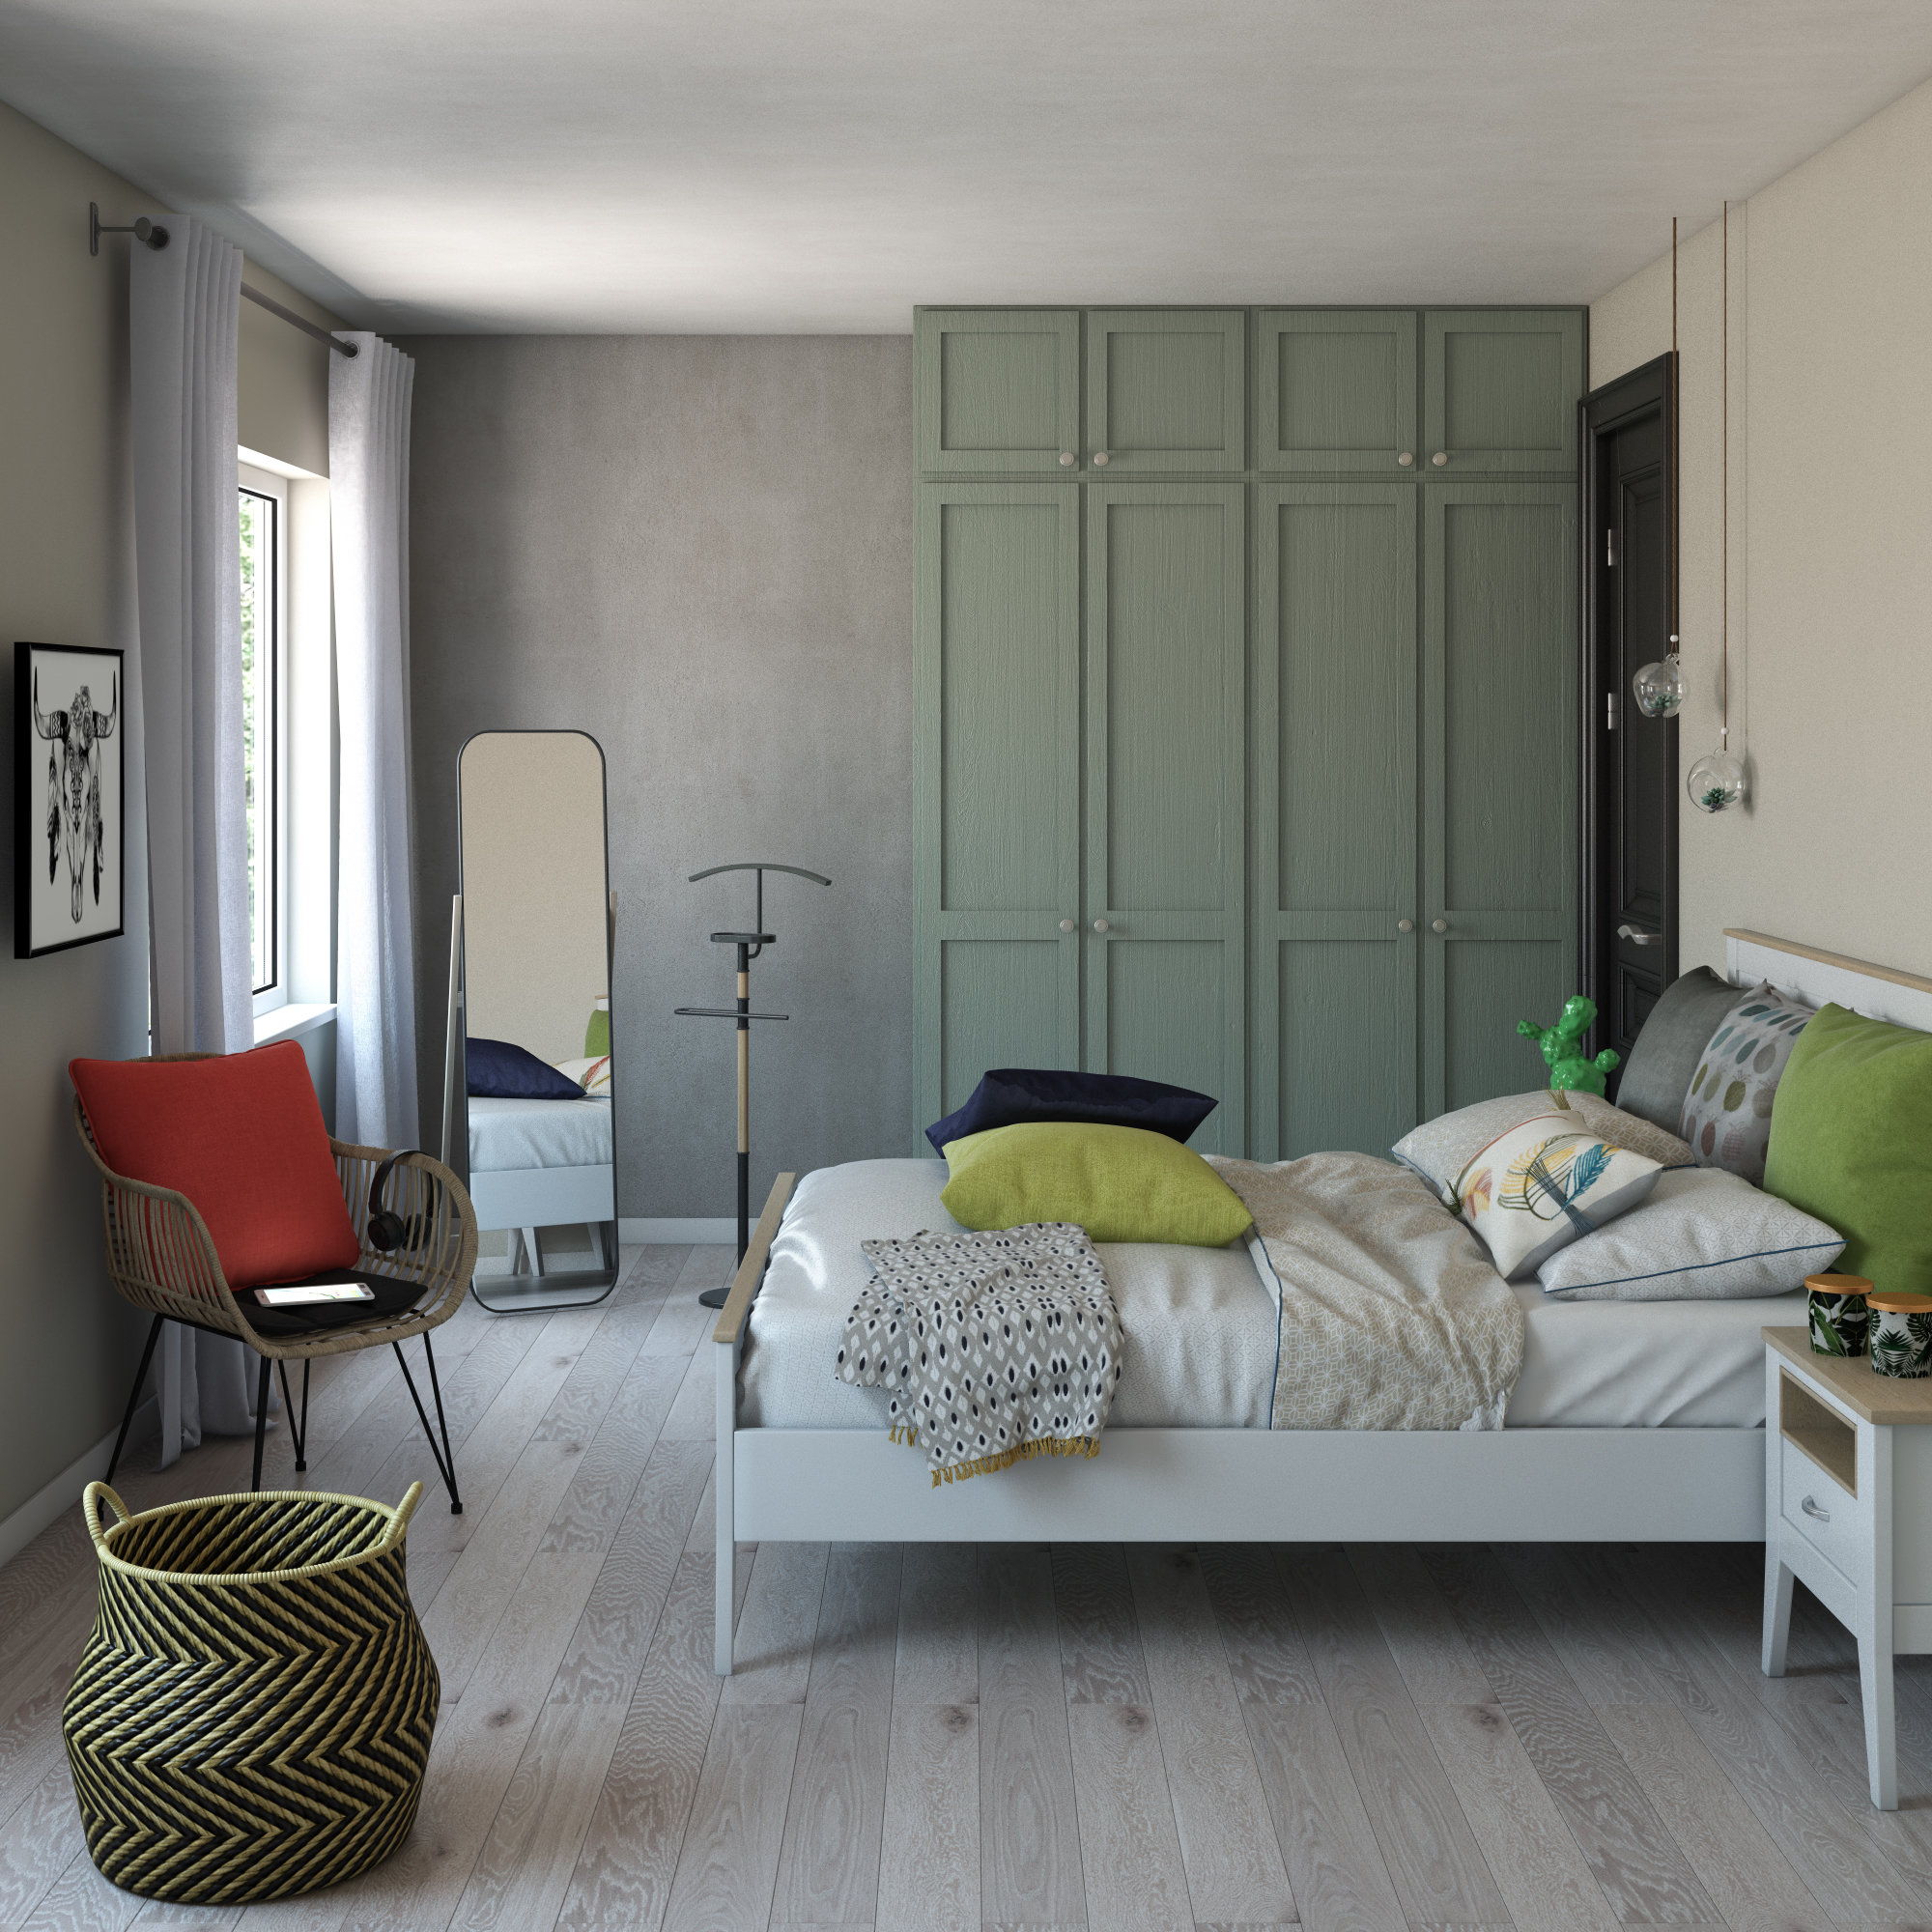 Chambre nature verte blanche rouge : inspiration style Nature